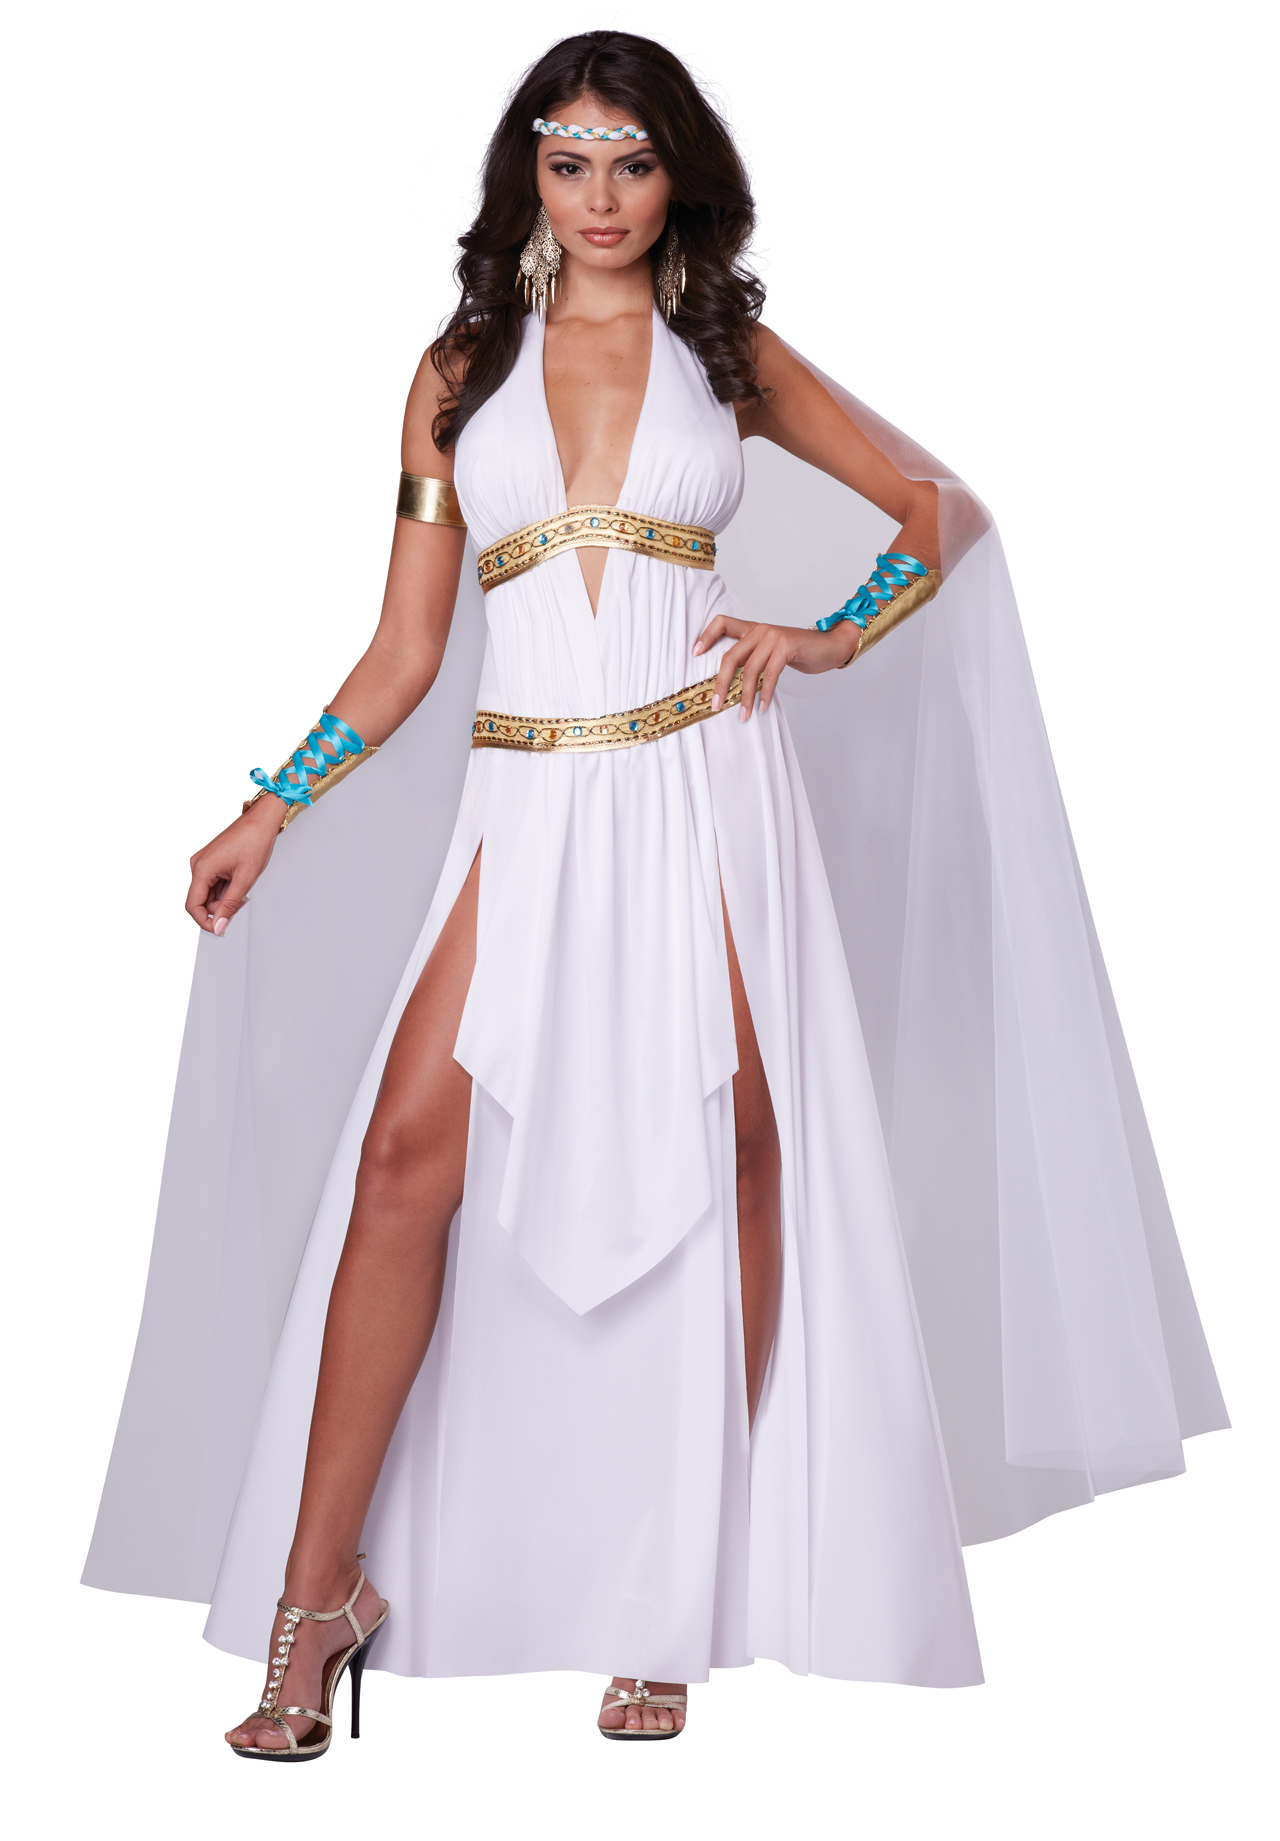 women glorious roman empire greek goddess full halloween costume set dress cape